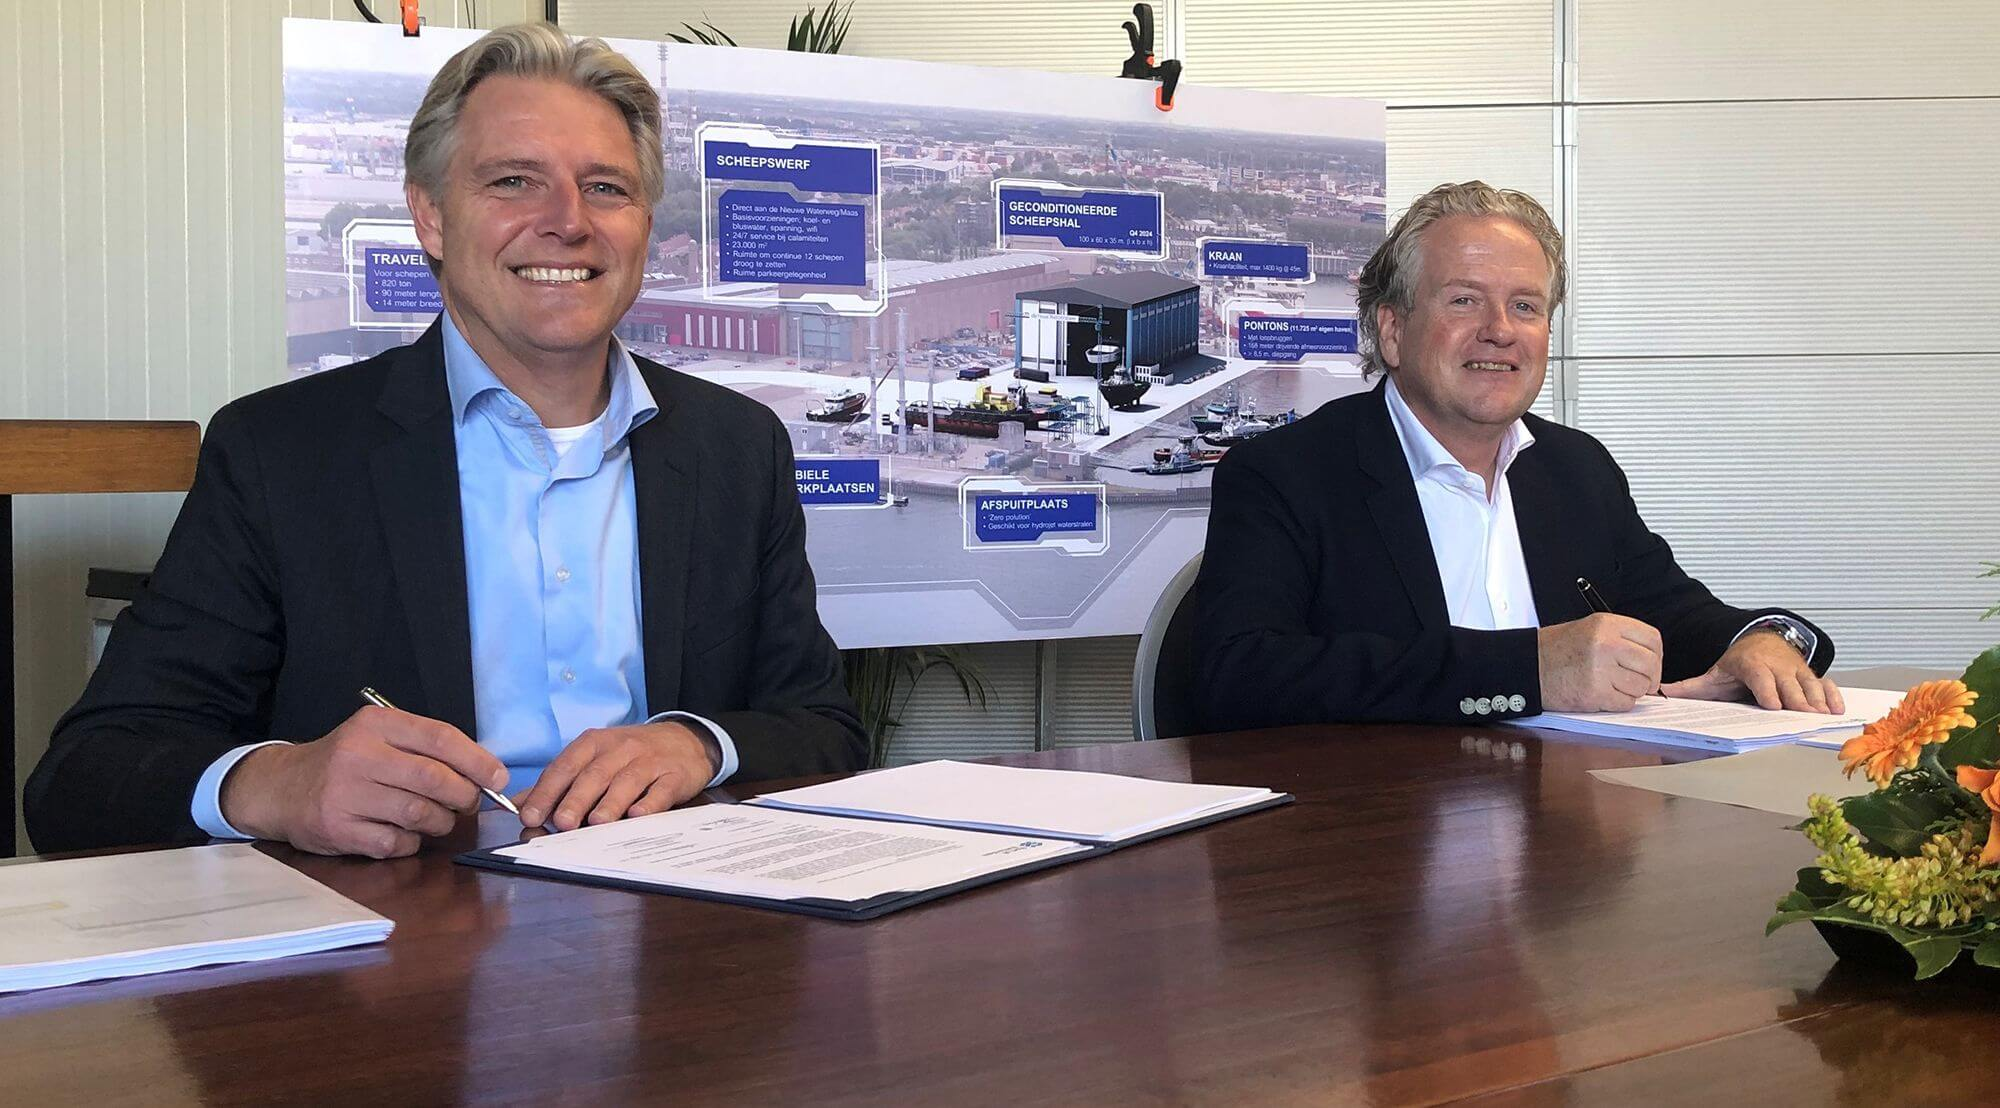 De Haas Rotterdam to expand RDM location with new boat hoist and greater capacity